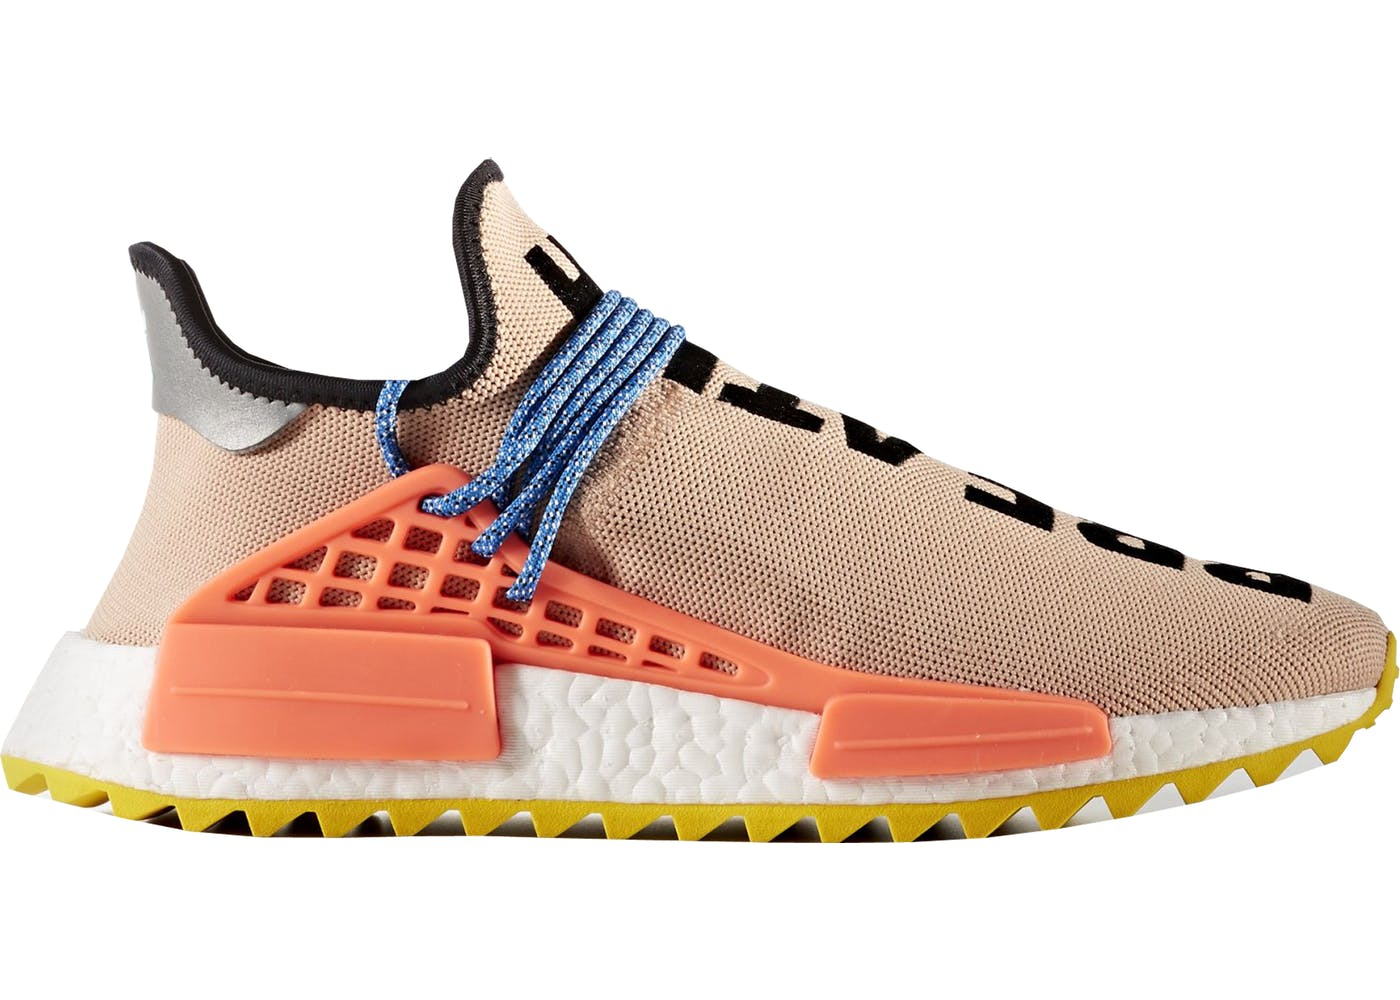 ADIDAS X PHARRELL NMD HUMAN RACE Blue brake clothing